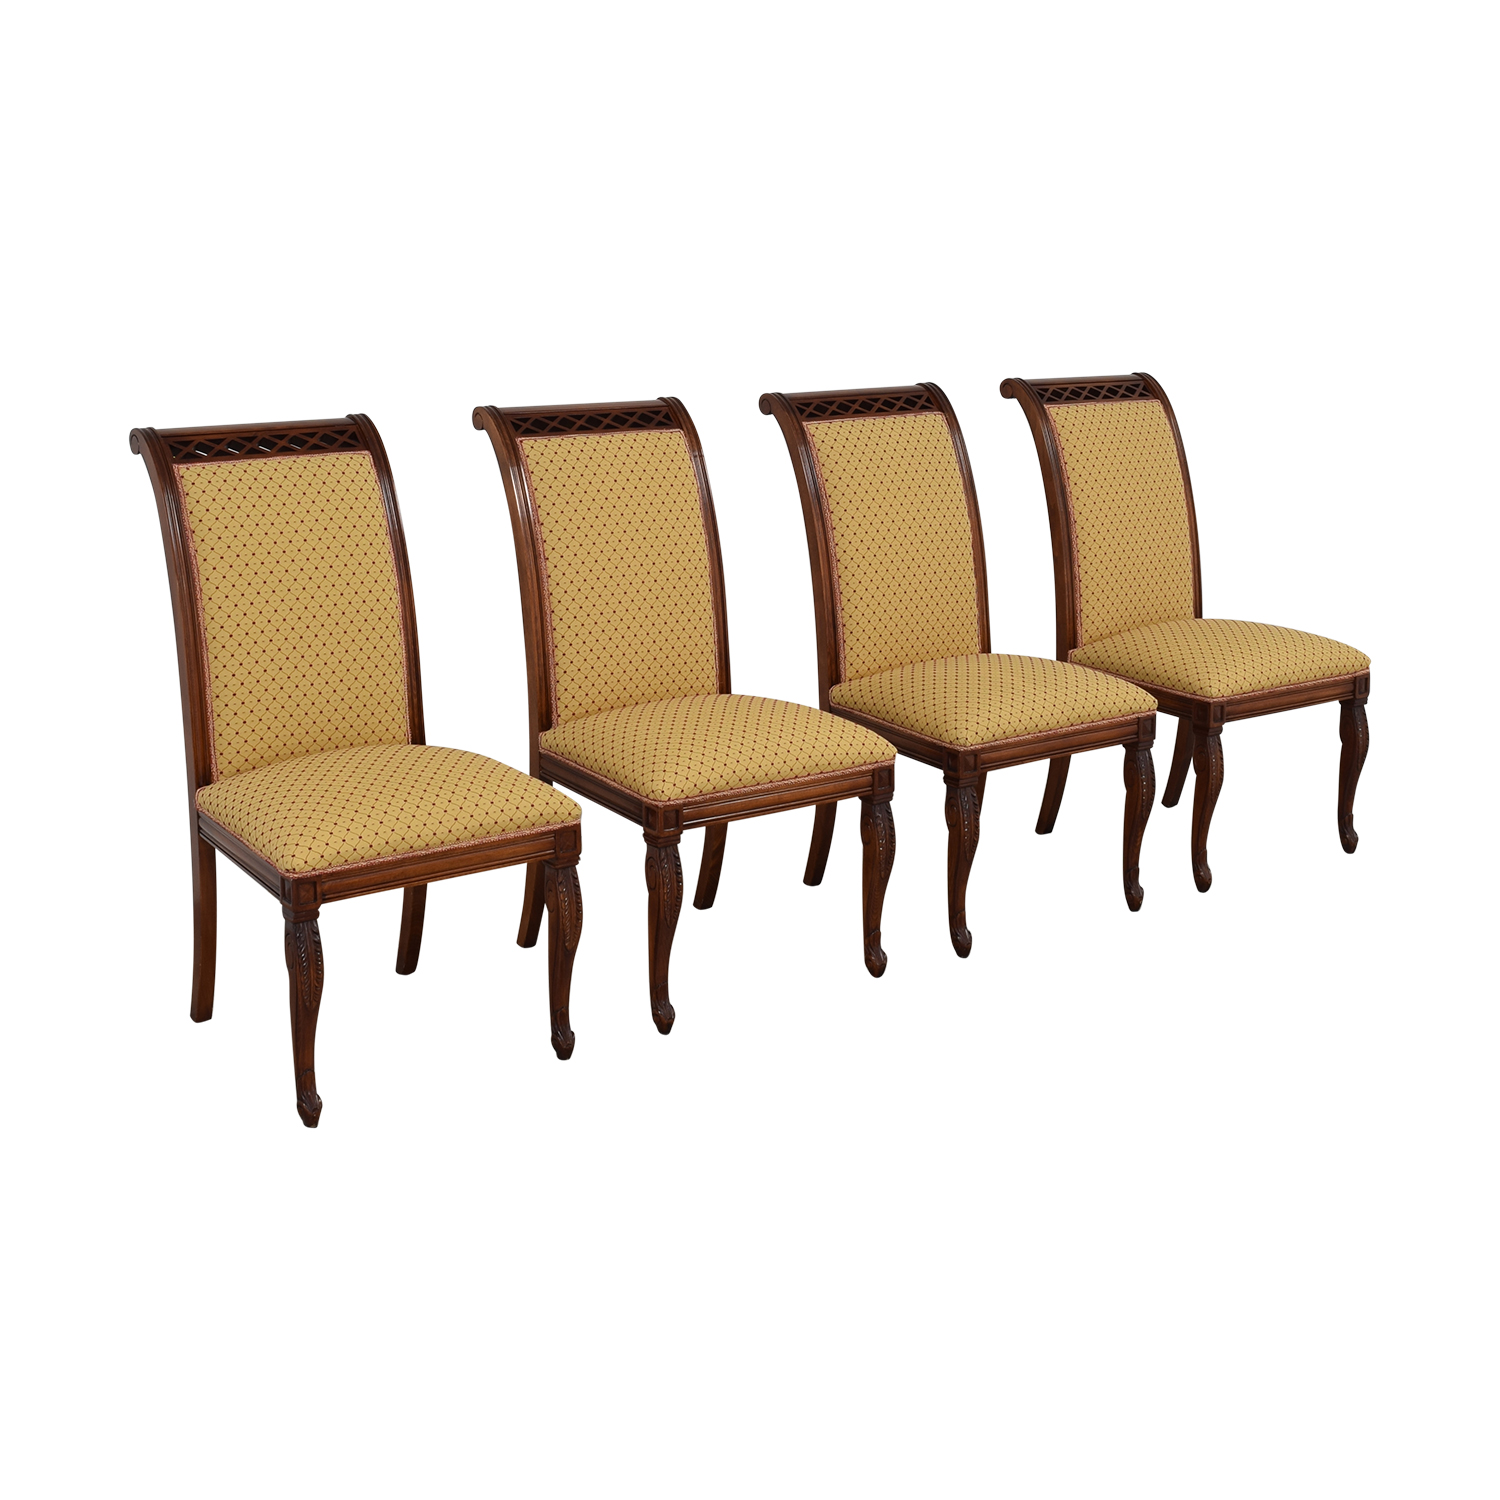 KPS Furnishings Custom Dining Chairs / Dining Chairs